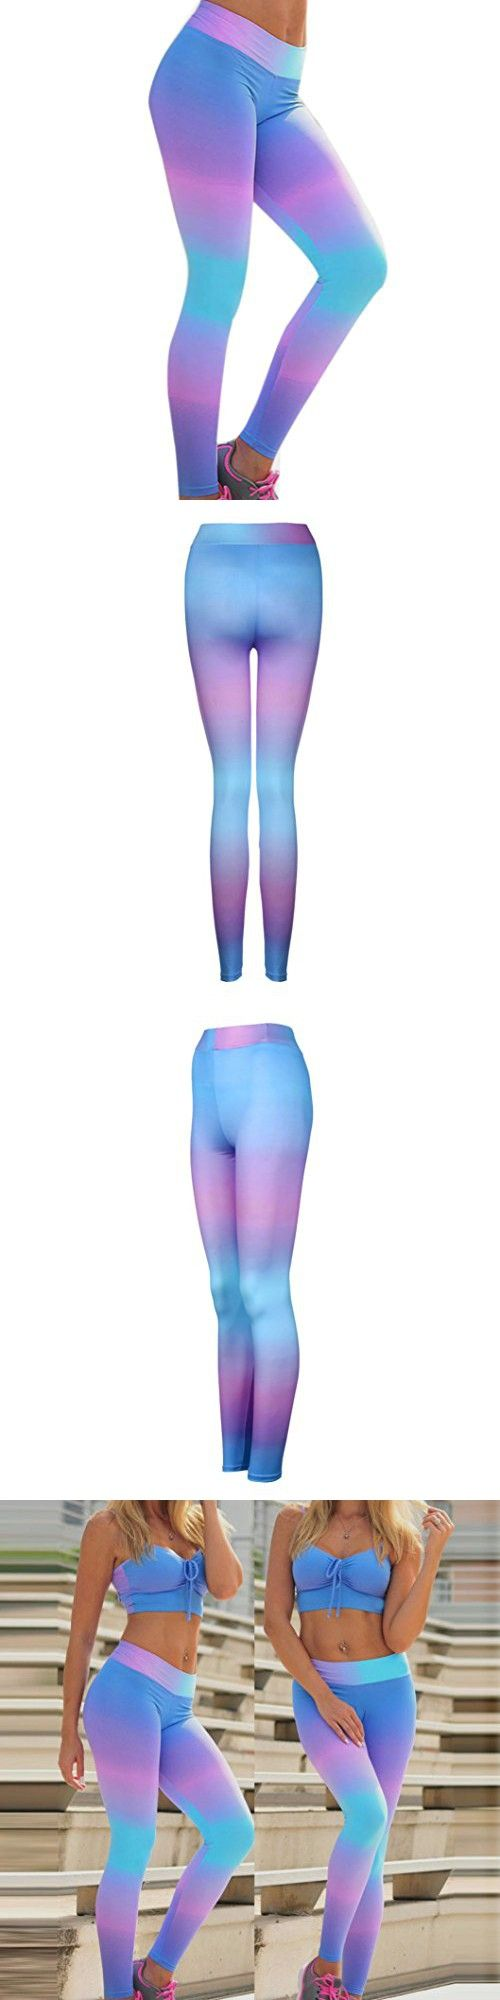 Hot Sale! Women Sports Leggings,Canserin Women's Printing Yoga Workout Gym Sports Running Pants Leggings Fitness Stretch Trousers (S, Purple)